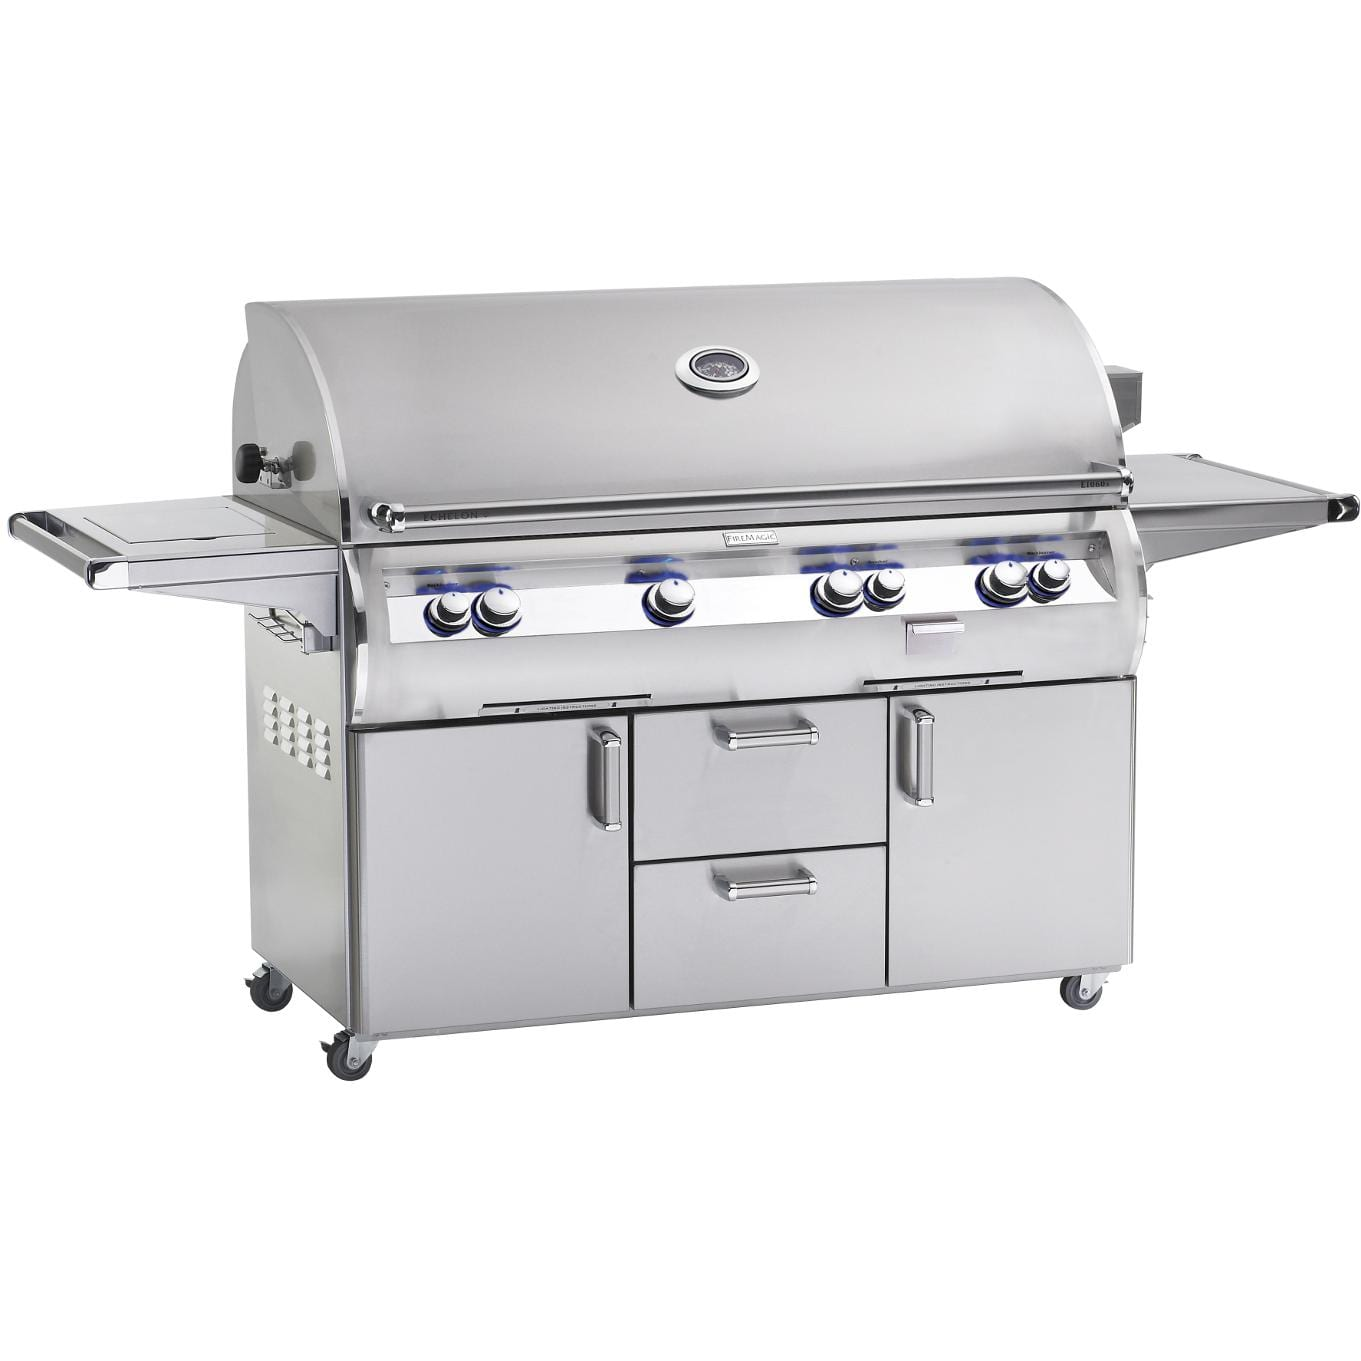 Fire Magic Echelon Diamond E1060s Natural Gas Grill